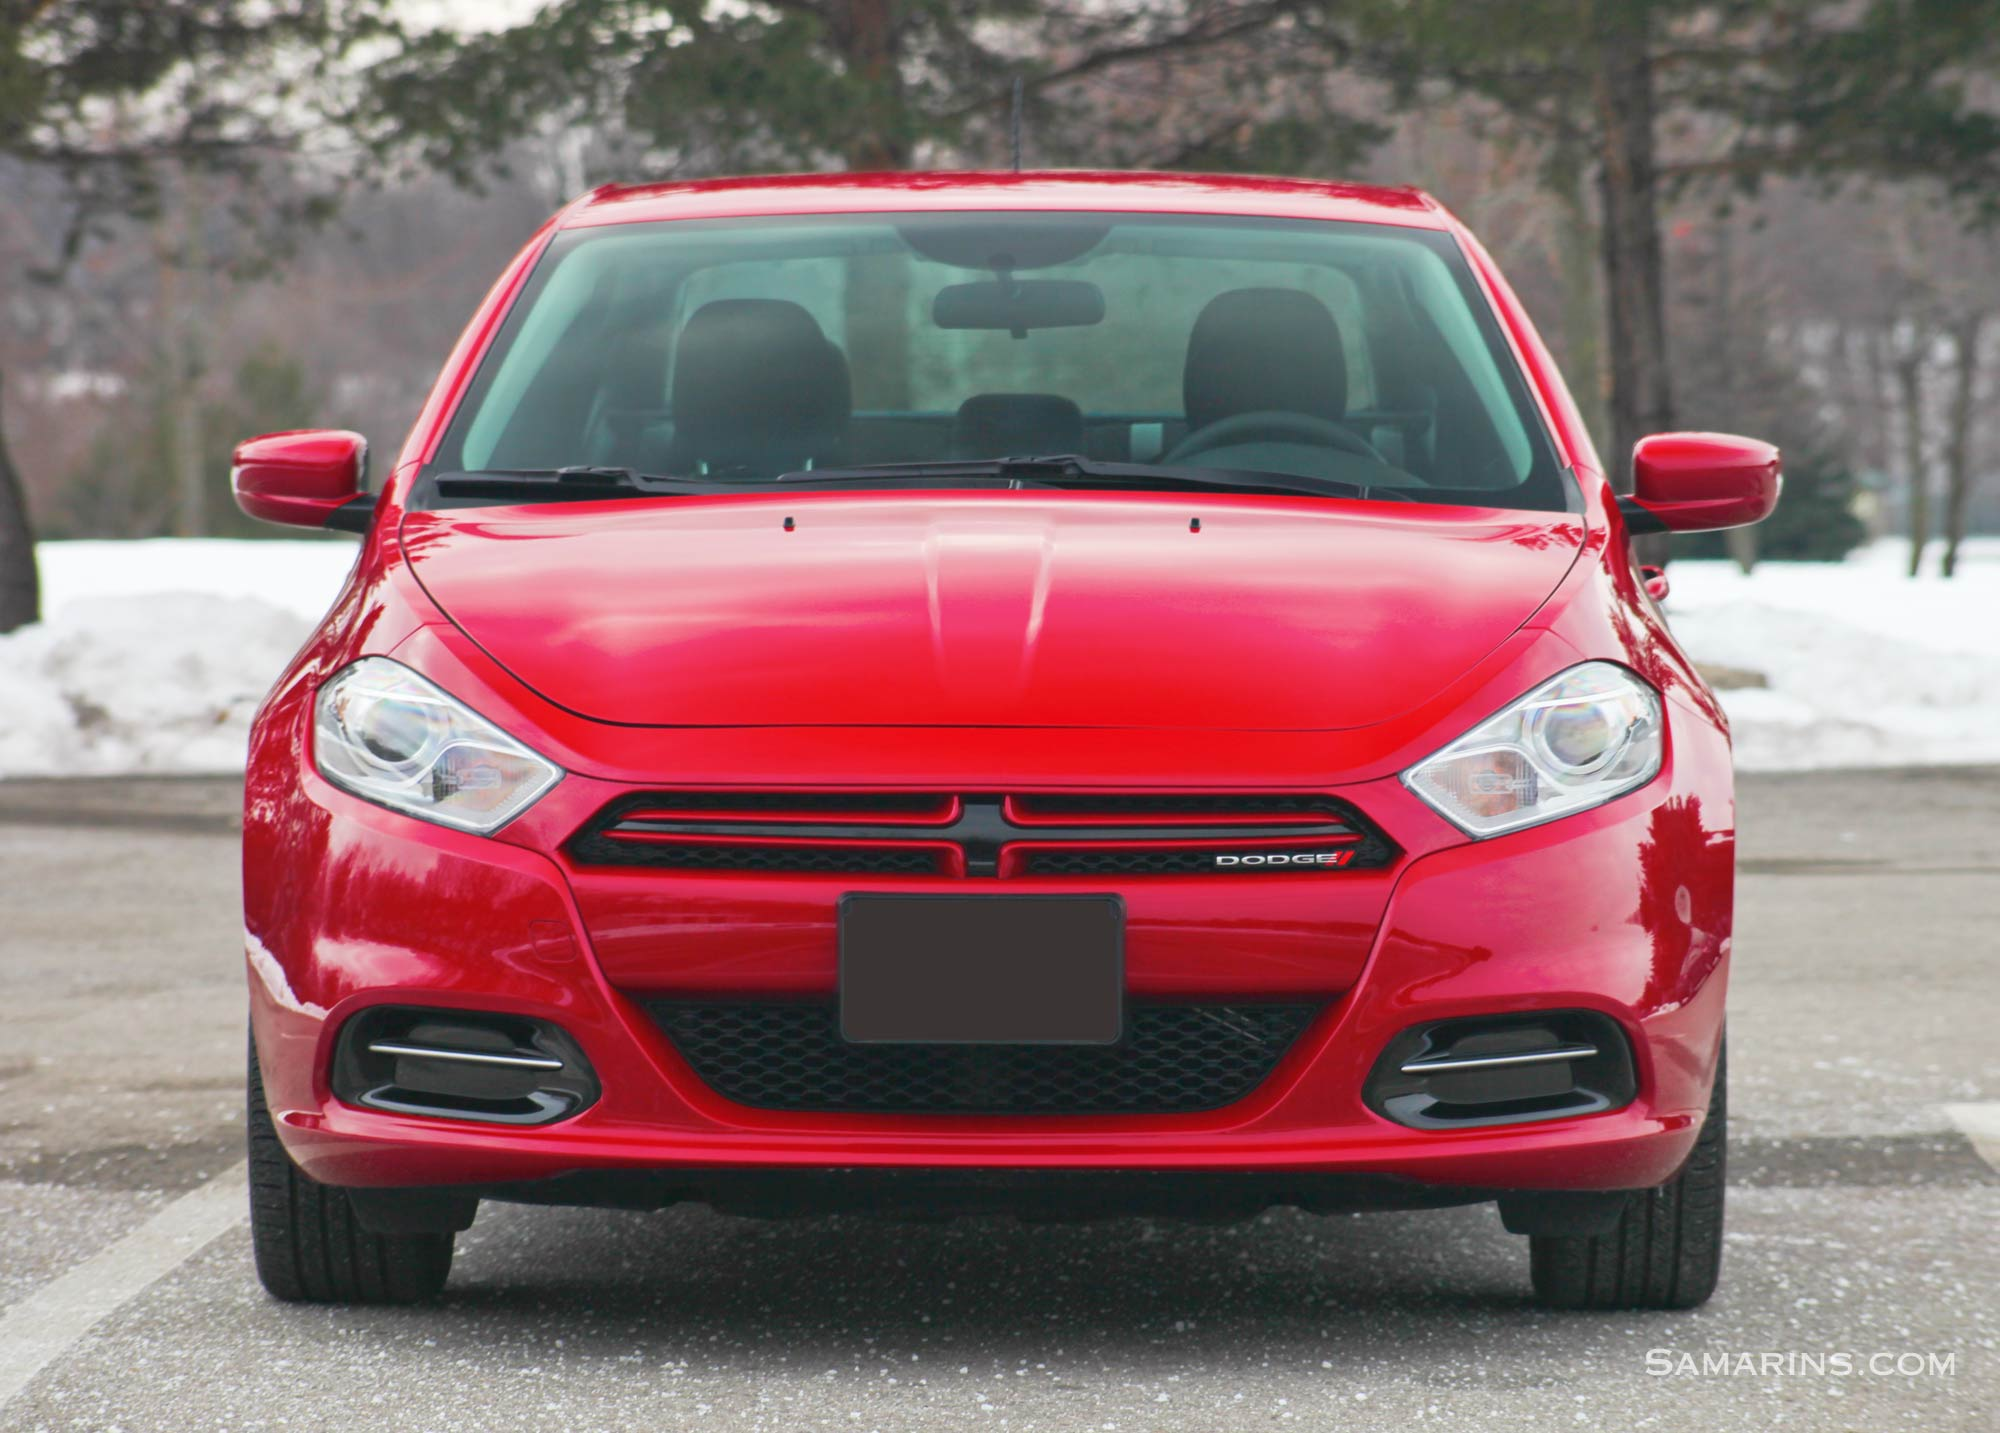 Dodge Dart Safety Ratings >> Dodge Dart 2013-2016 common problems, fuel economy, driving experience, photos